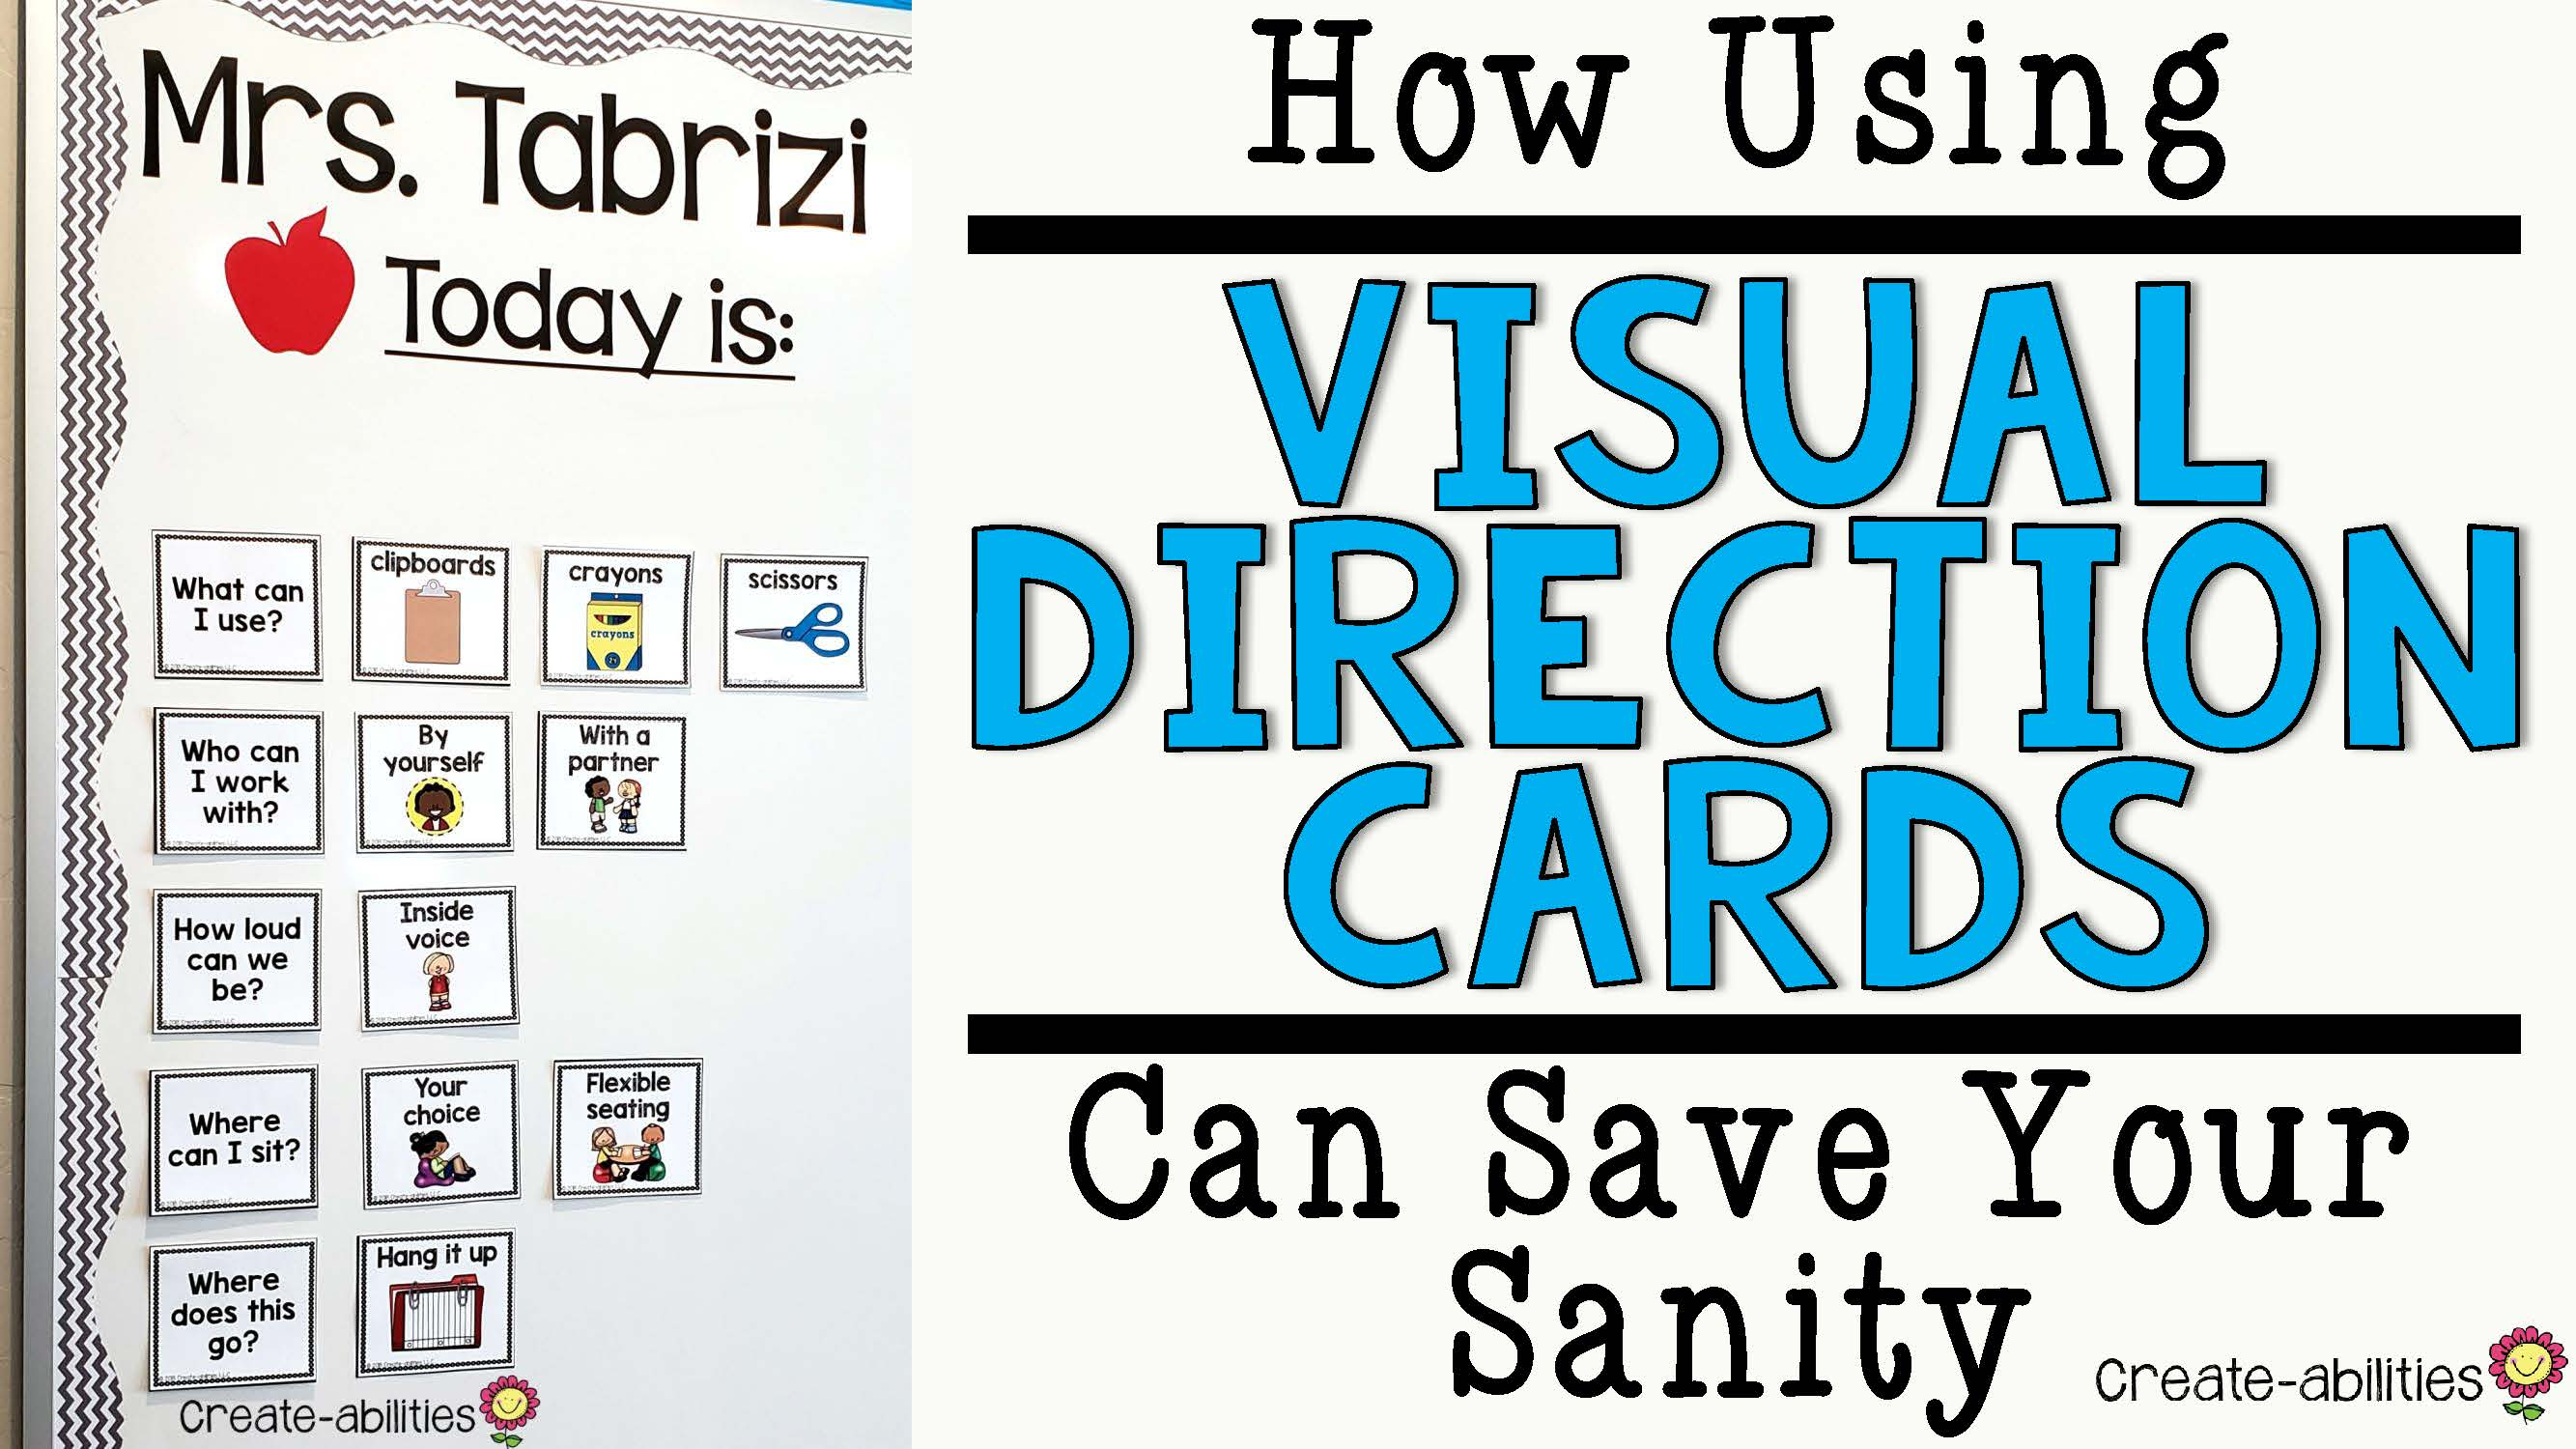 How Using Visual Directions Can Save Your Sanity